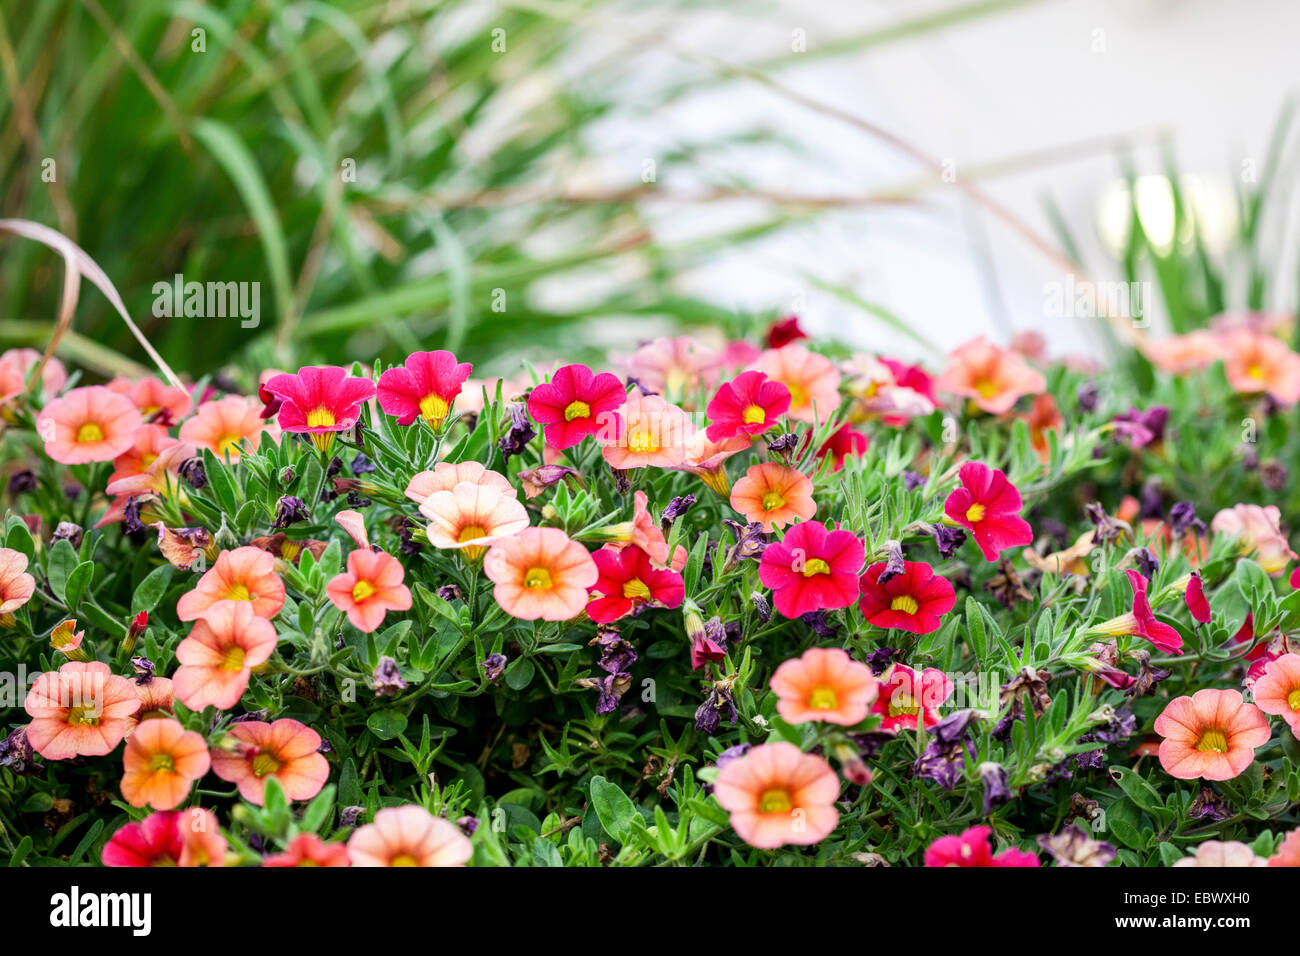 Roof top gardens potted plants in an urban setting - Stock Image